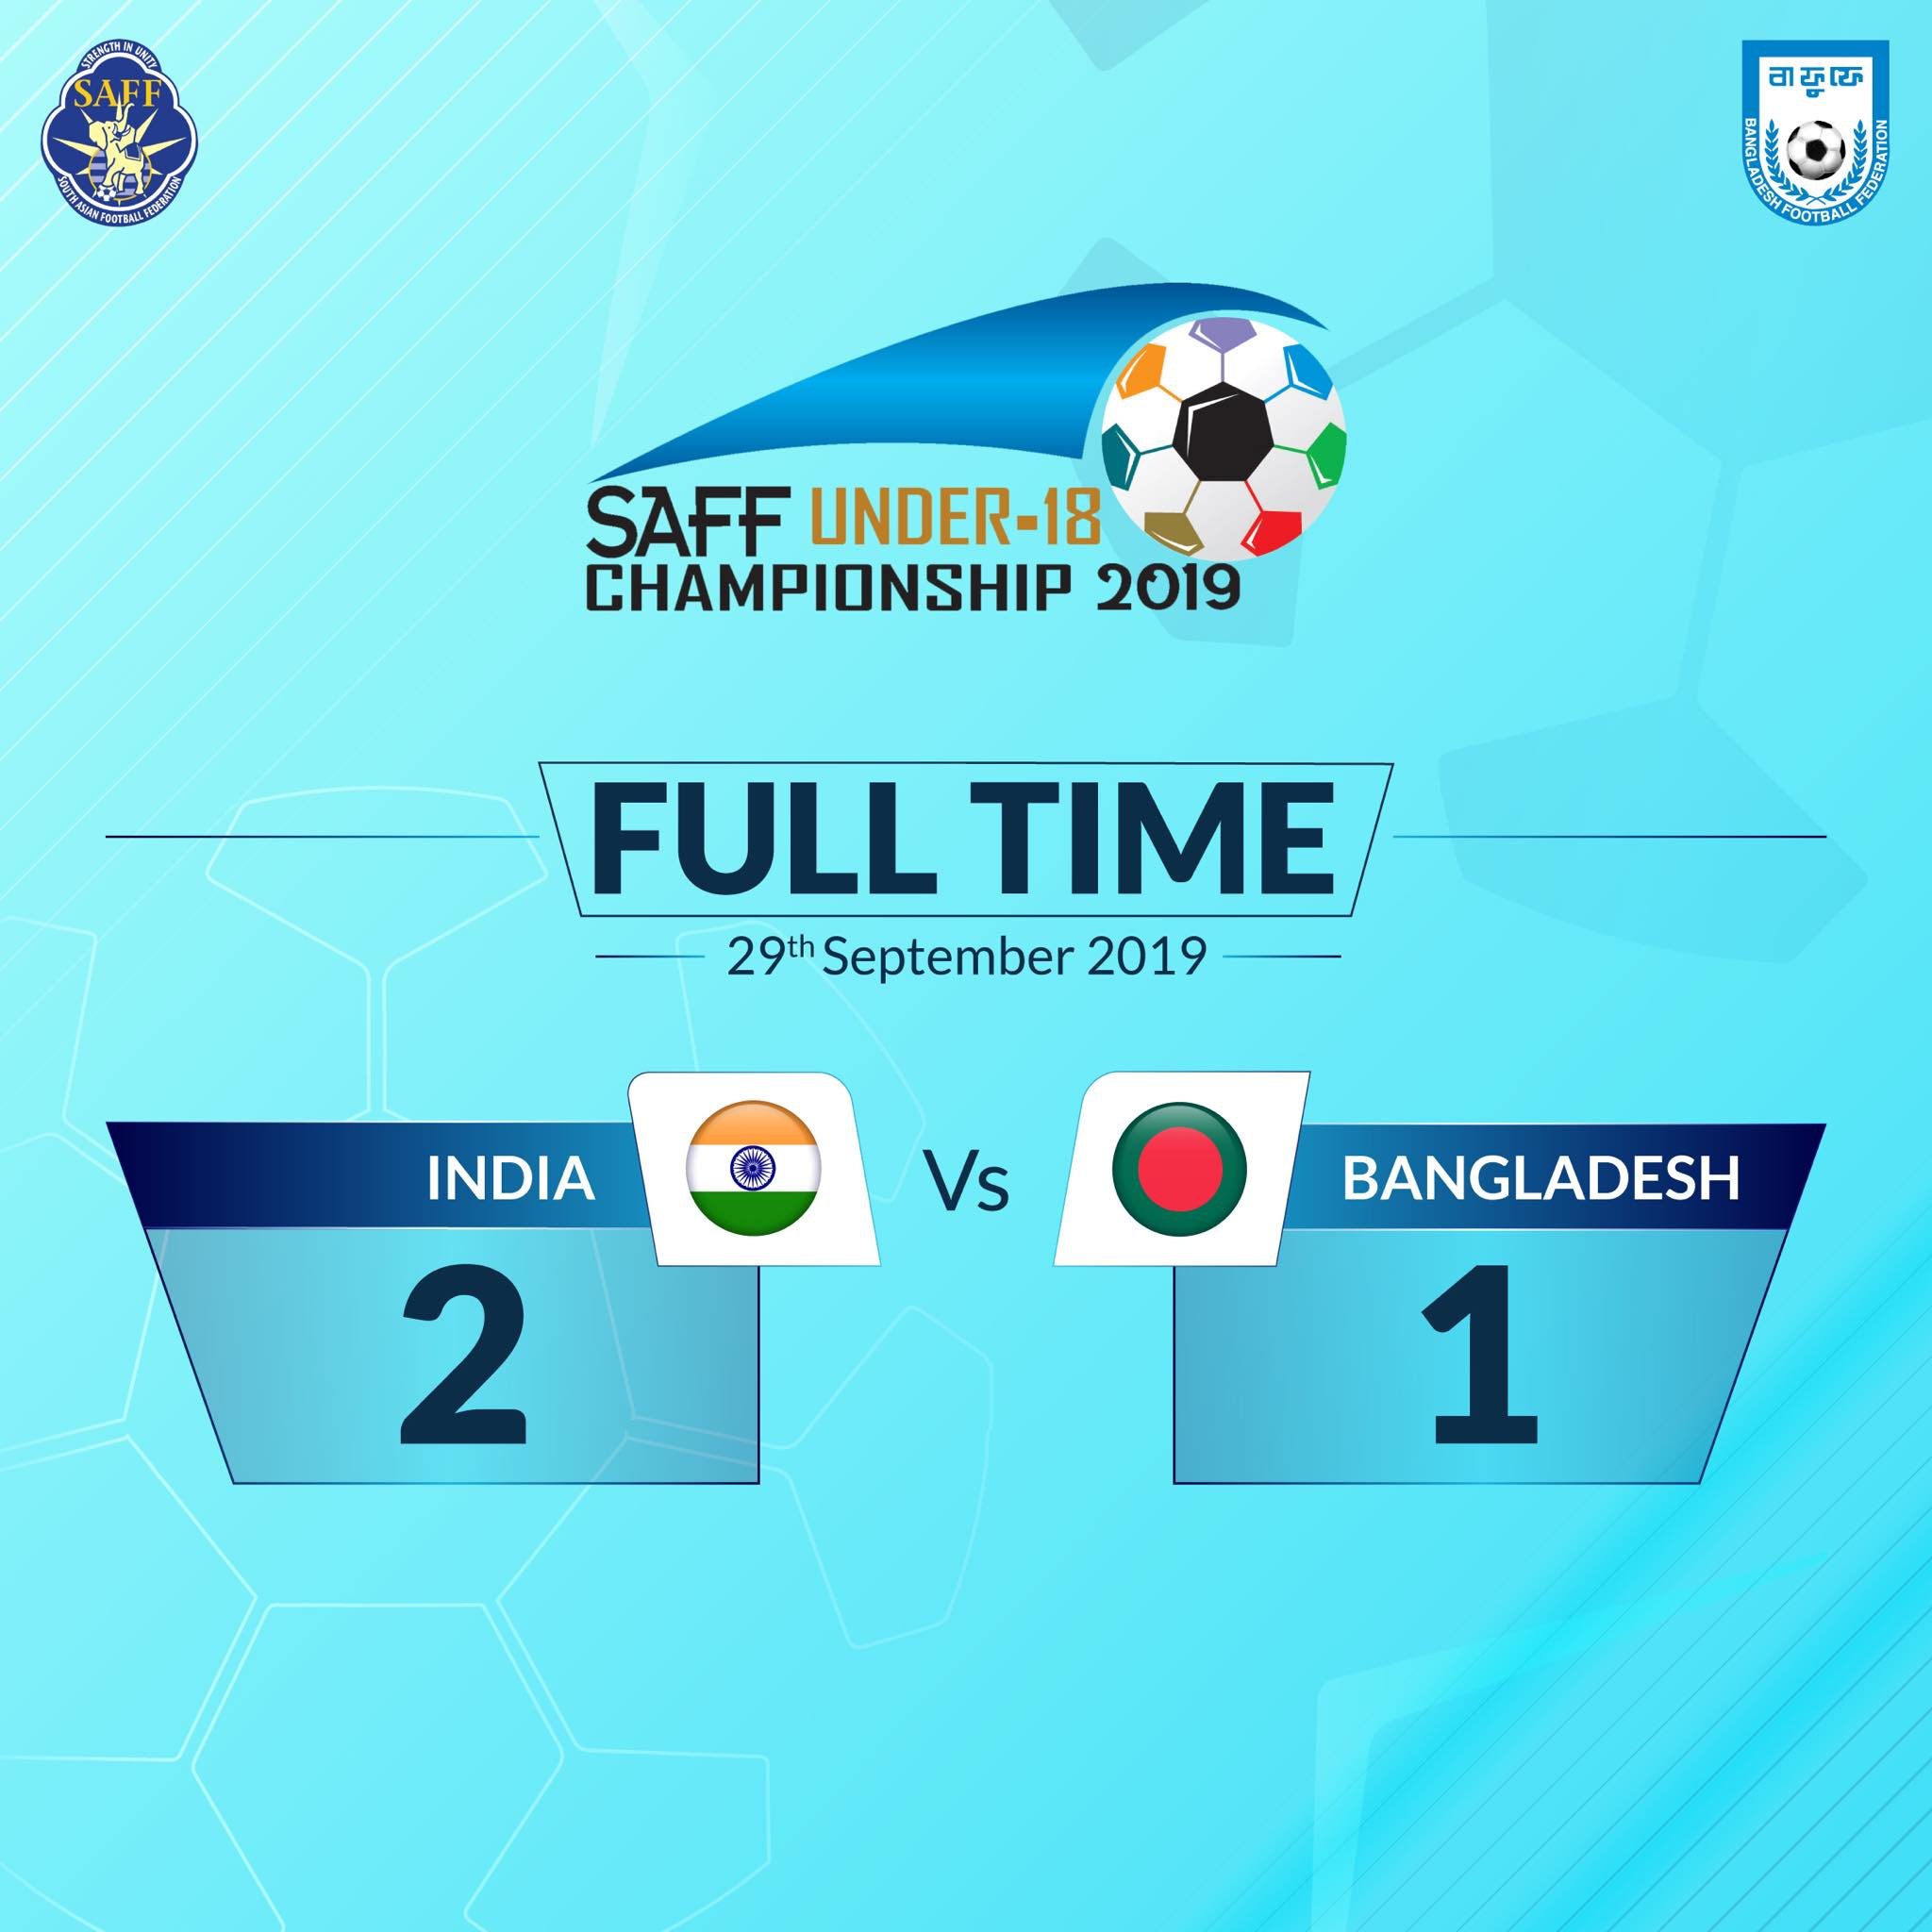 Nine-man Bangladesh concede 91st-minute winner against India in SAFF U18 Championship Final